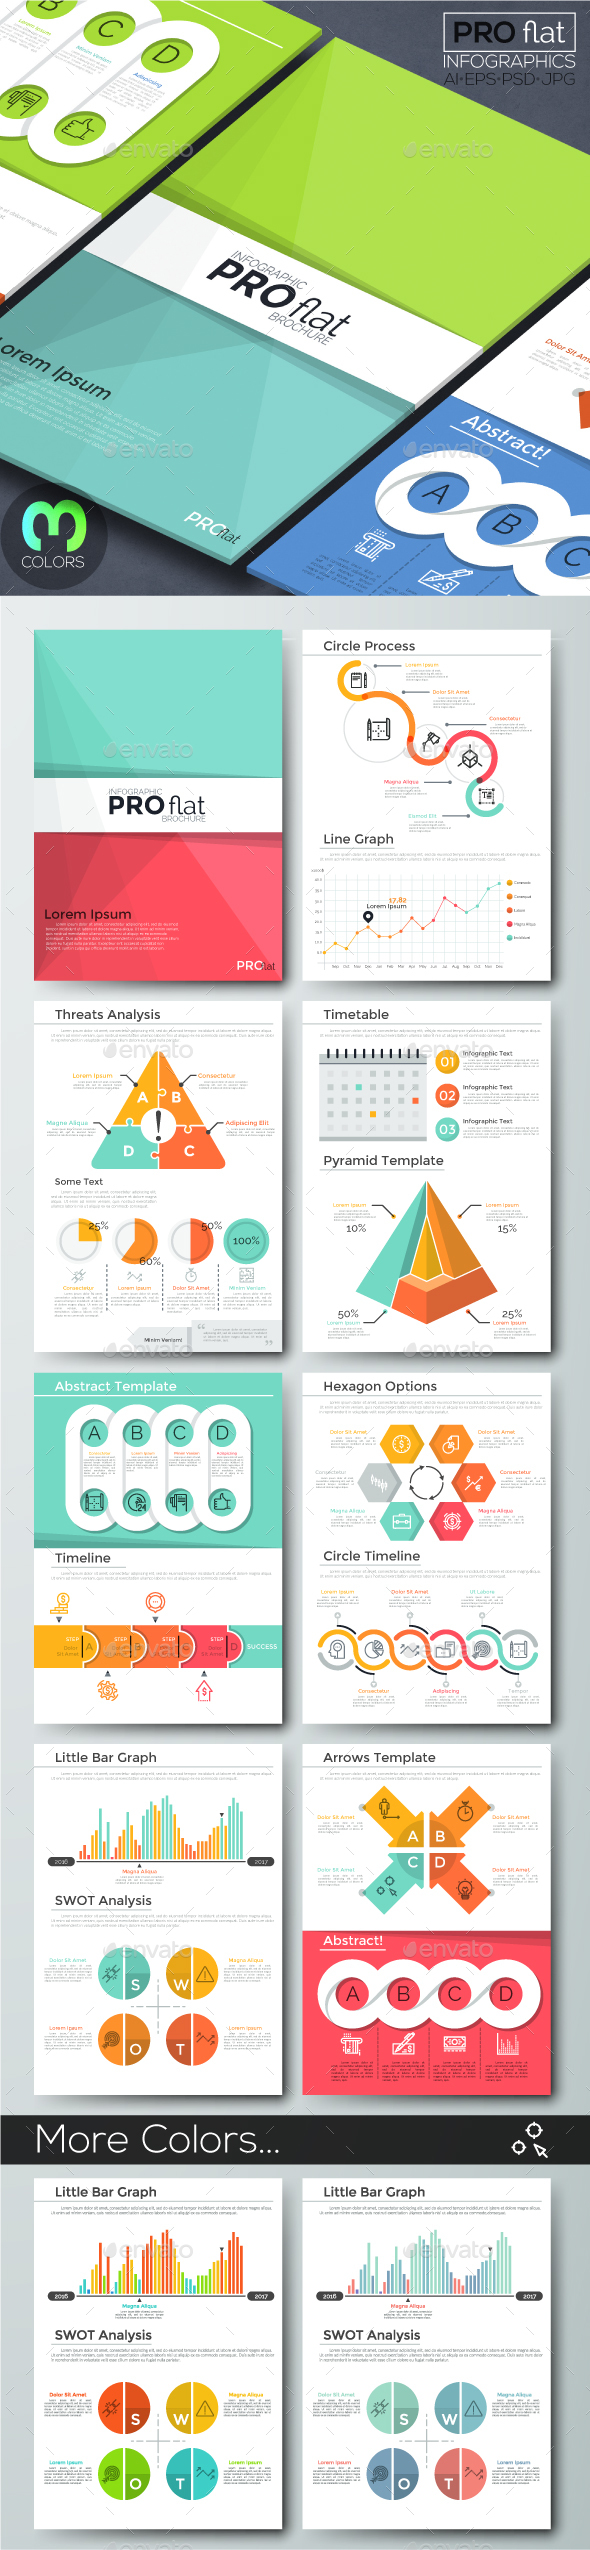 Pro Flat Infographic Brochure 11 (3 Versions) - Infographics